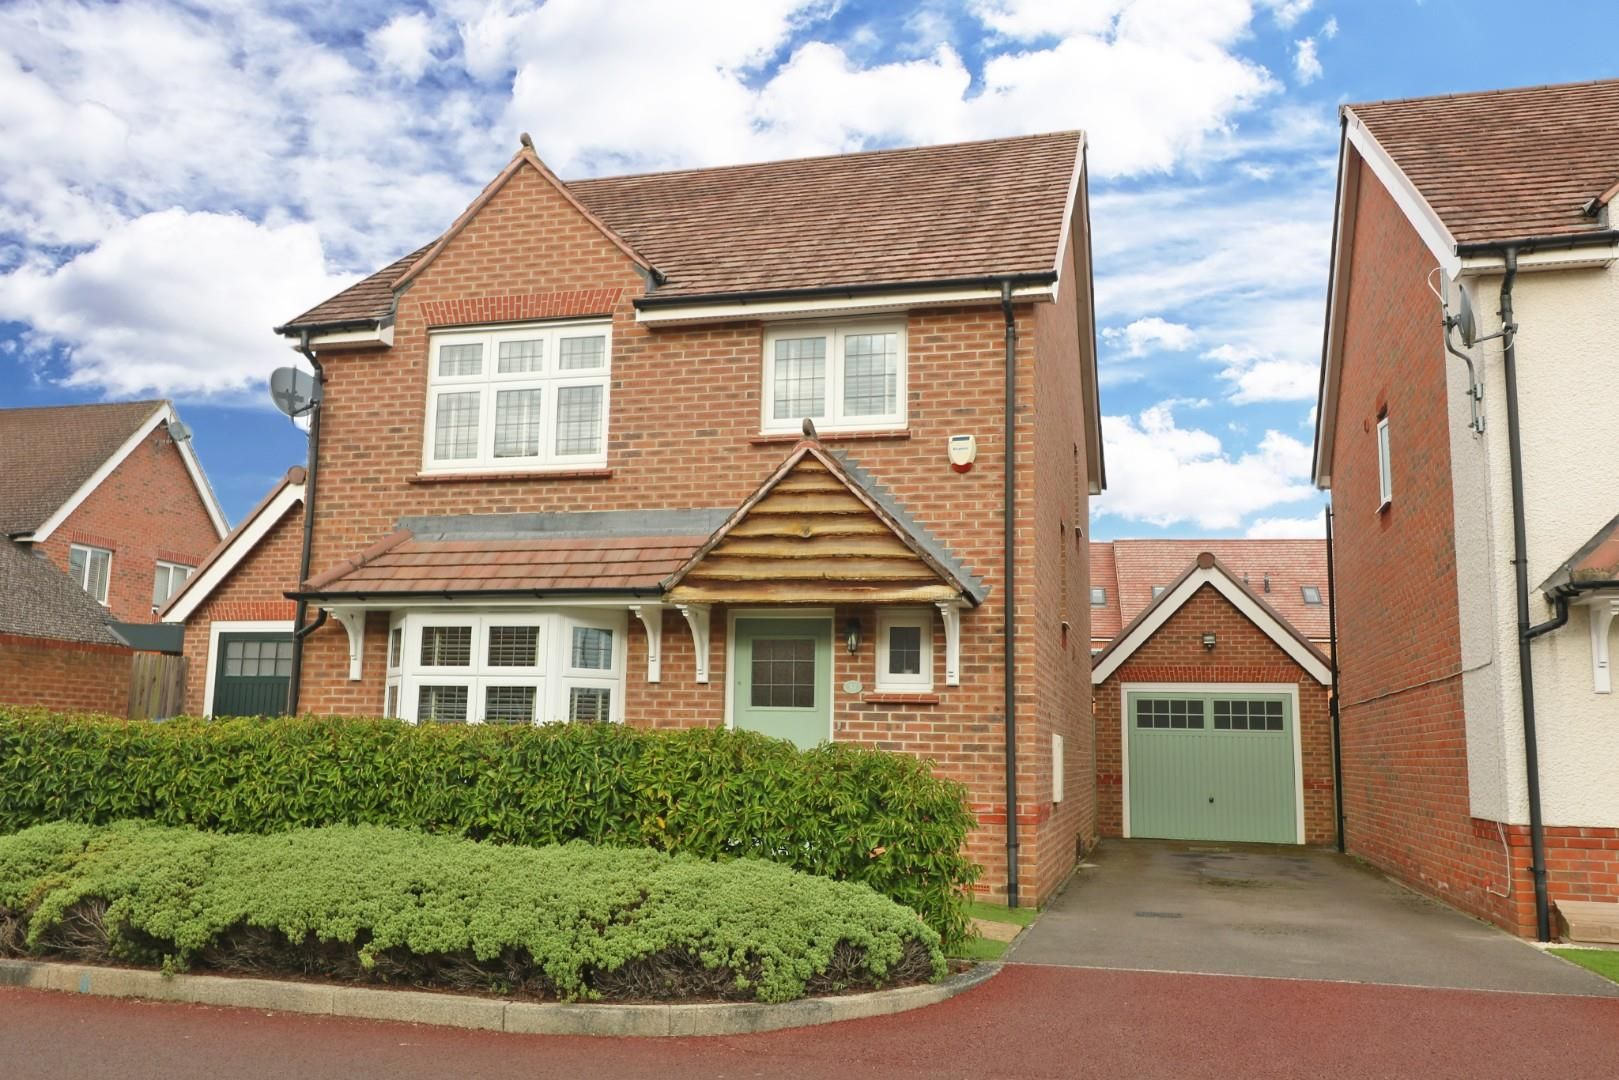 4 bed detached for sale, RG12